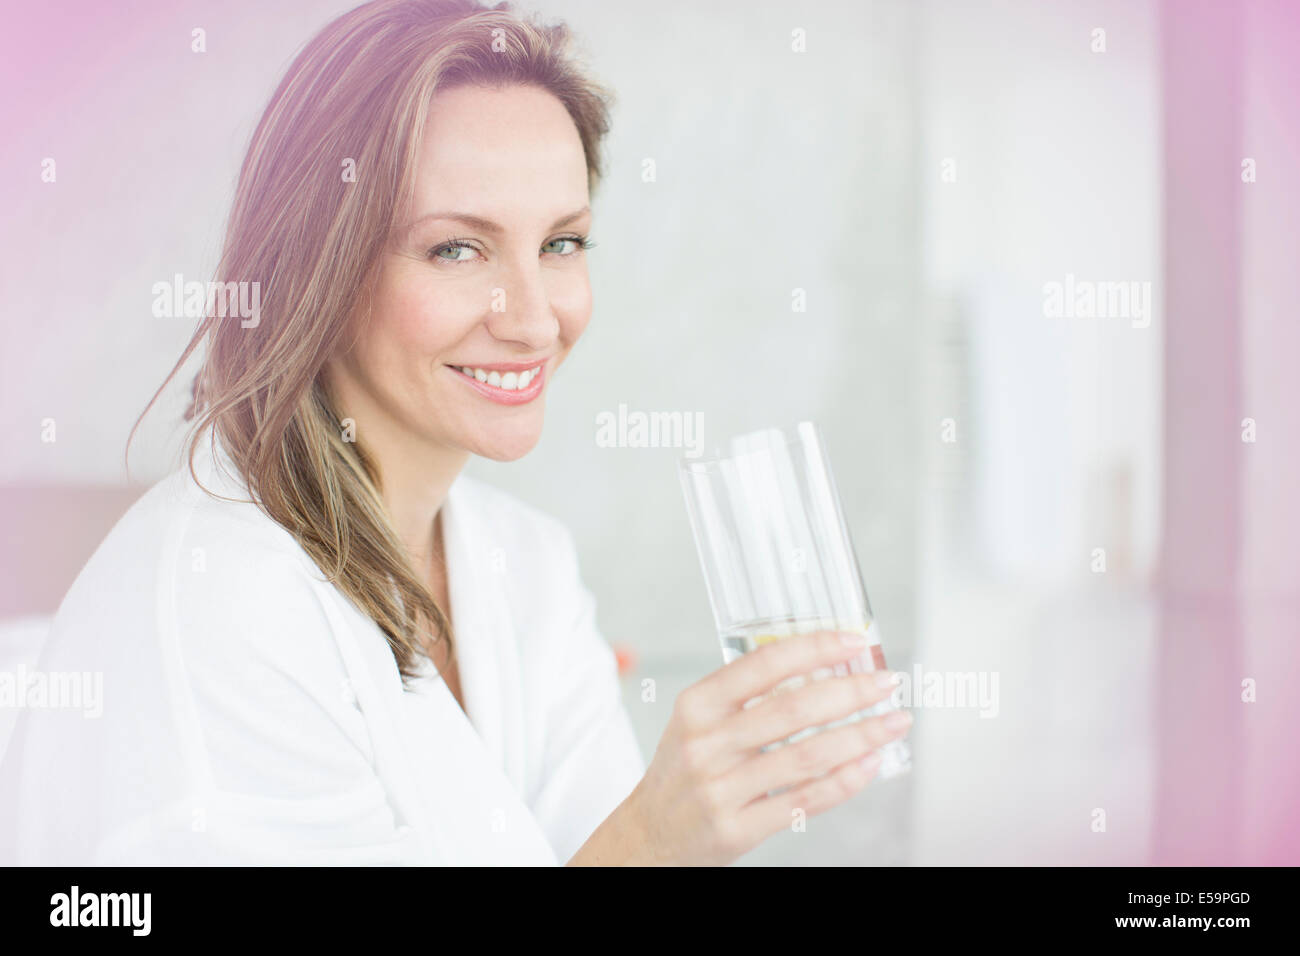 Woman having glass of water in bedroom - Stock Image